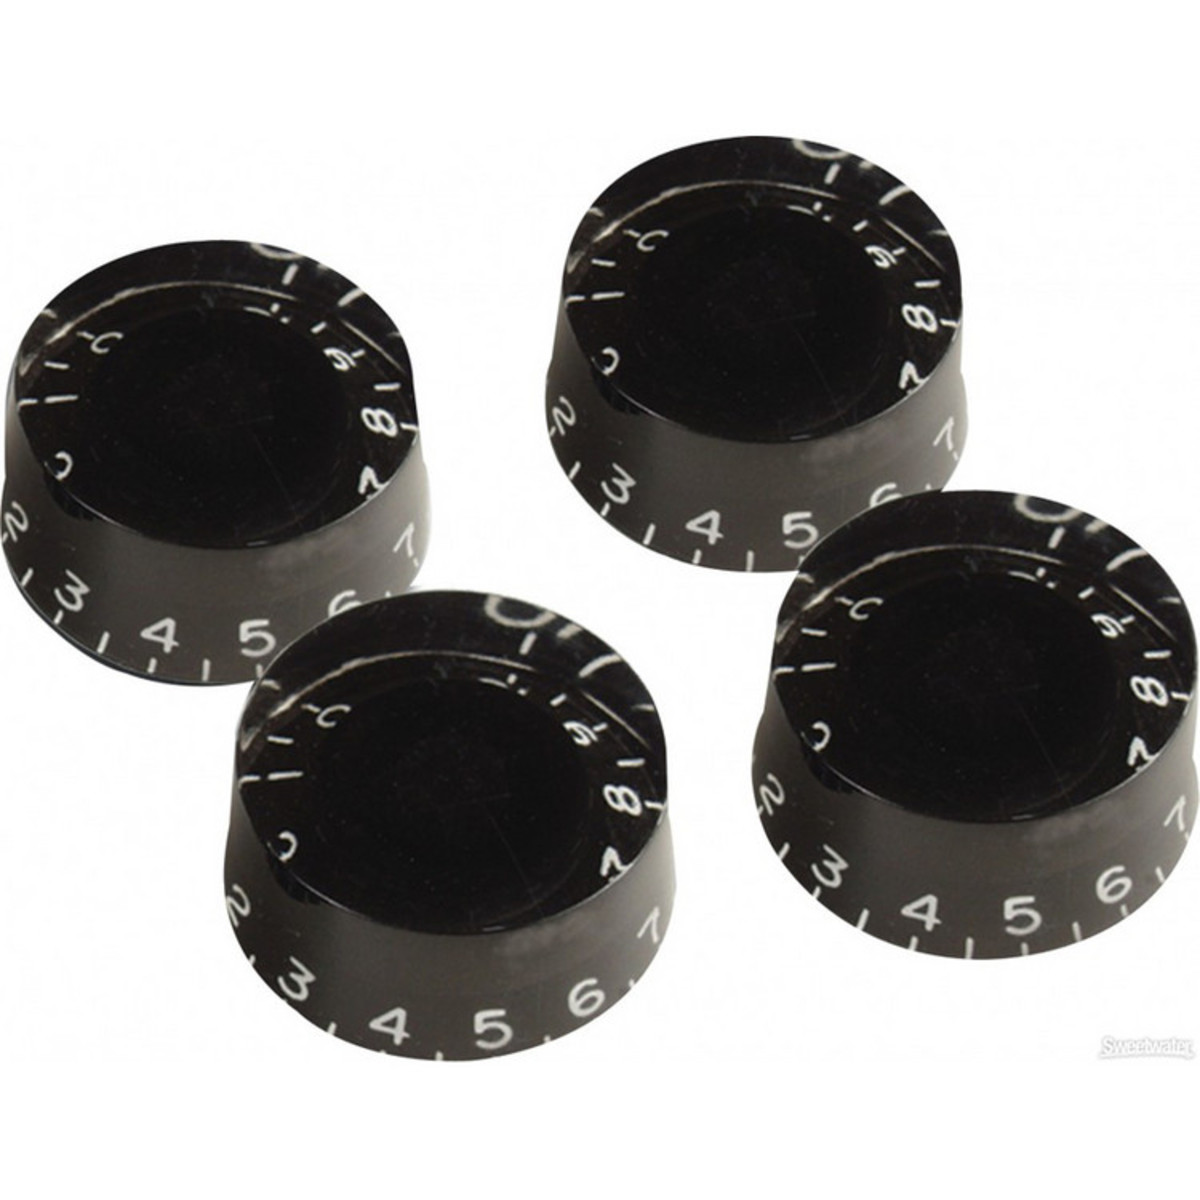 gibson speed knobs for electric guitar 4 pack black at. Black Bedroom Furniture Sets. Home Design Ideas